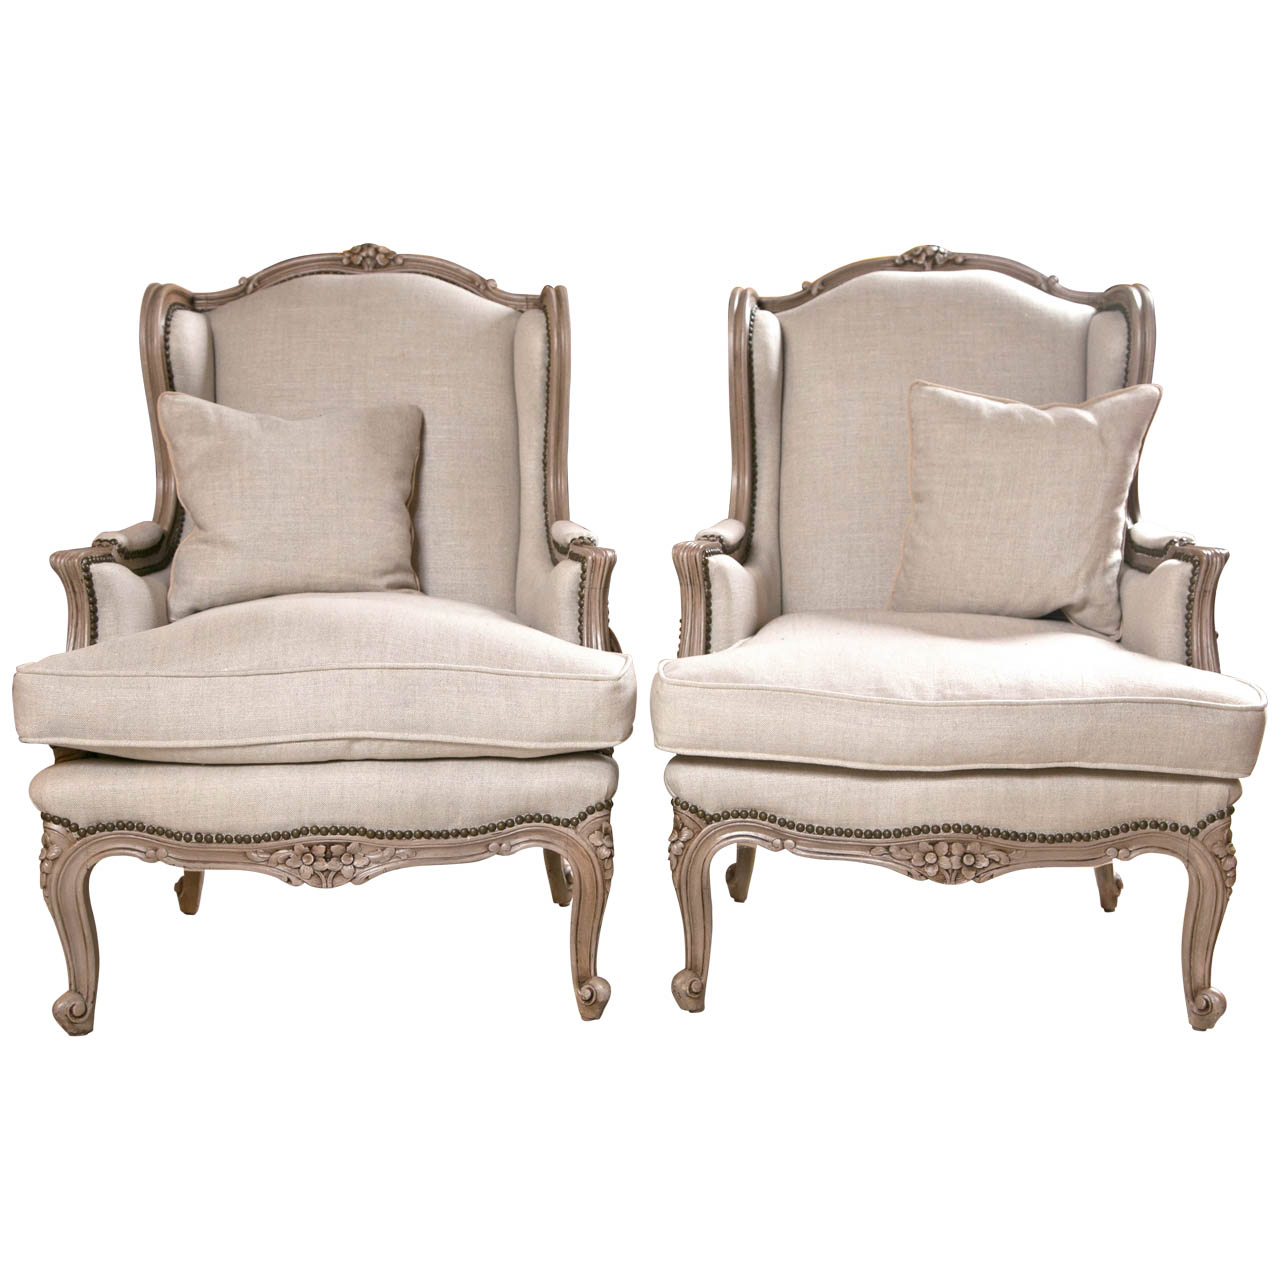 Image of: Wingback Dining Chair with Nailhead